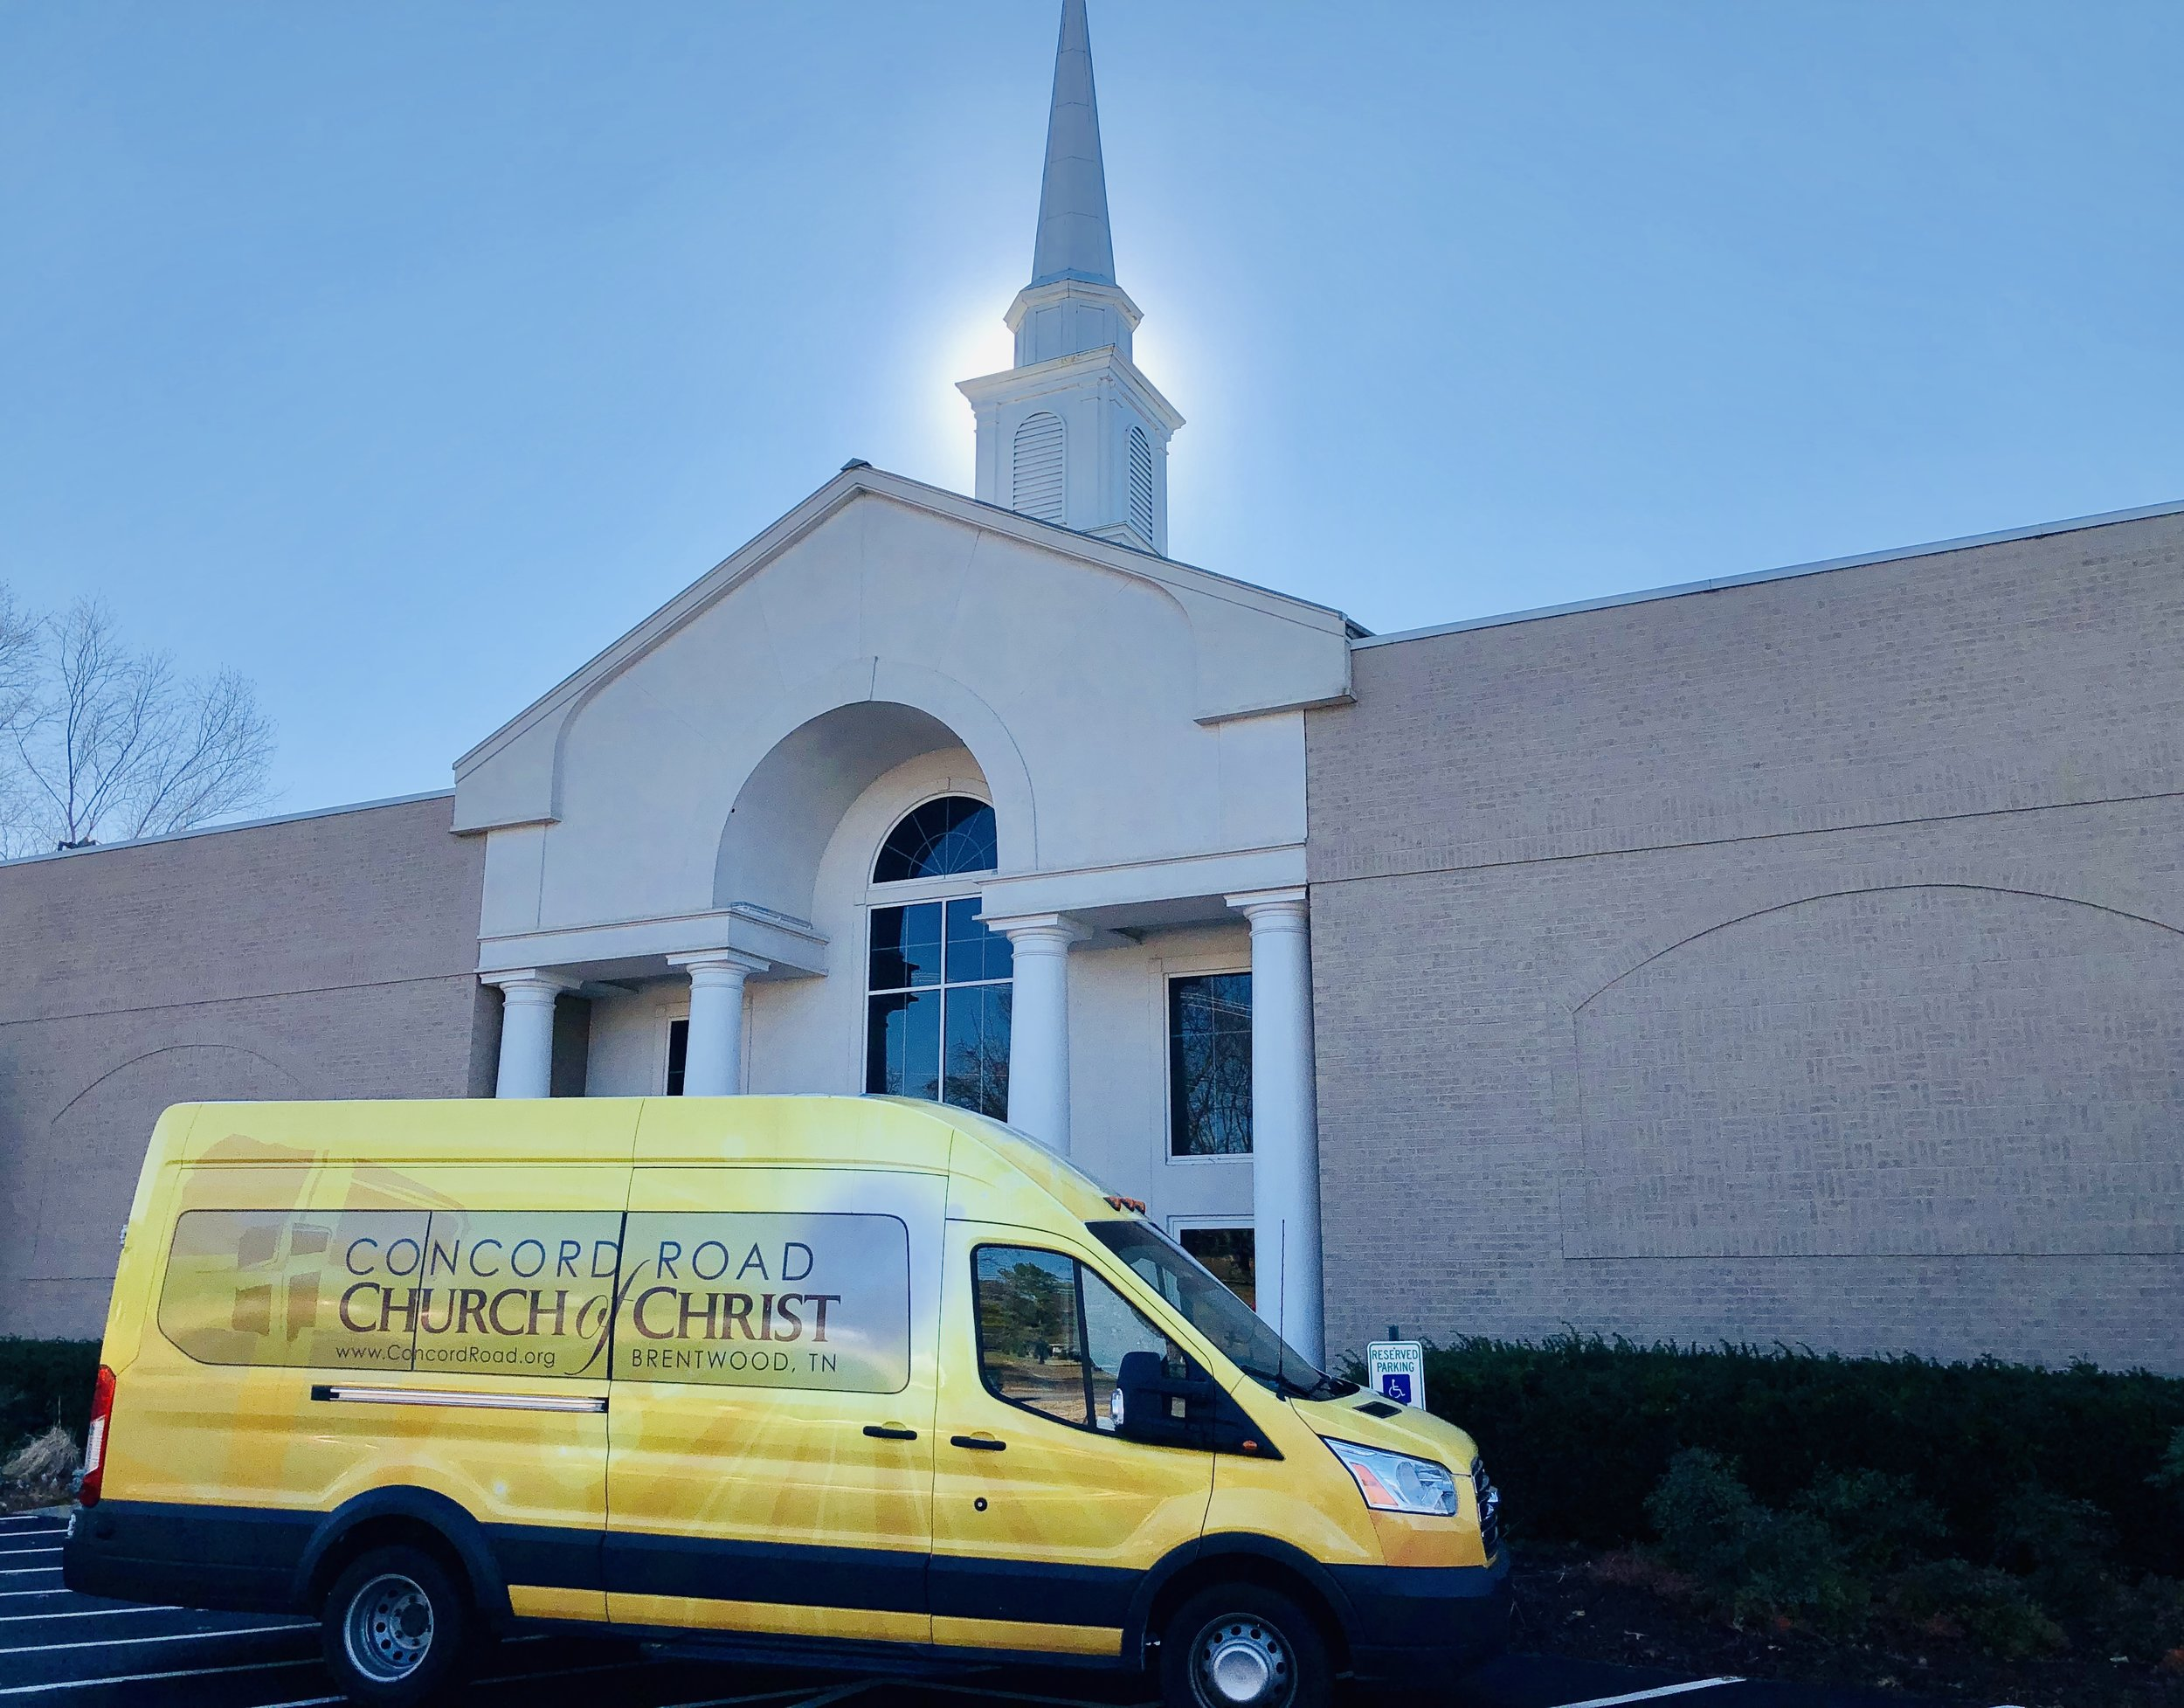 Brentwood-Concord-Road-church-of-Christ-Nashville